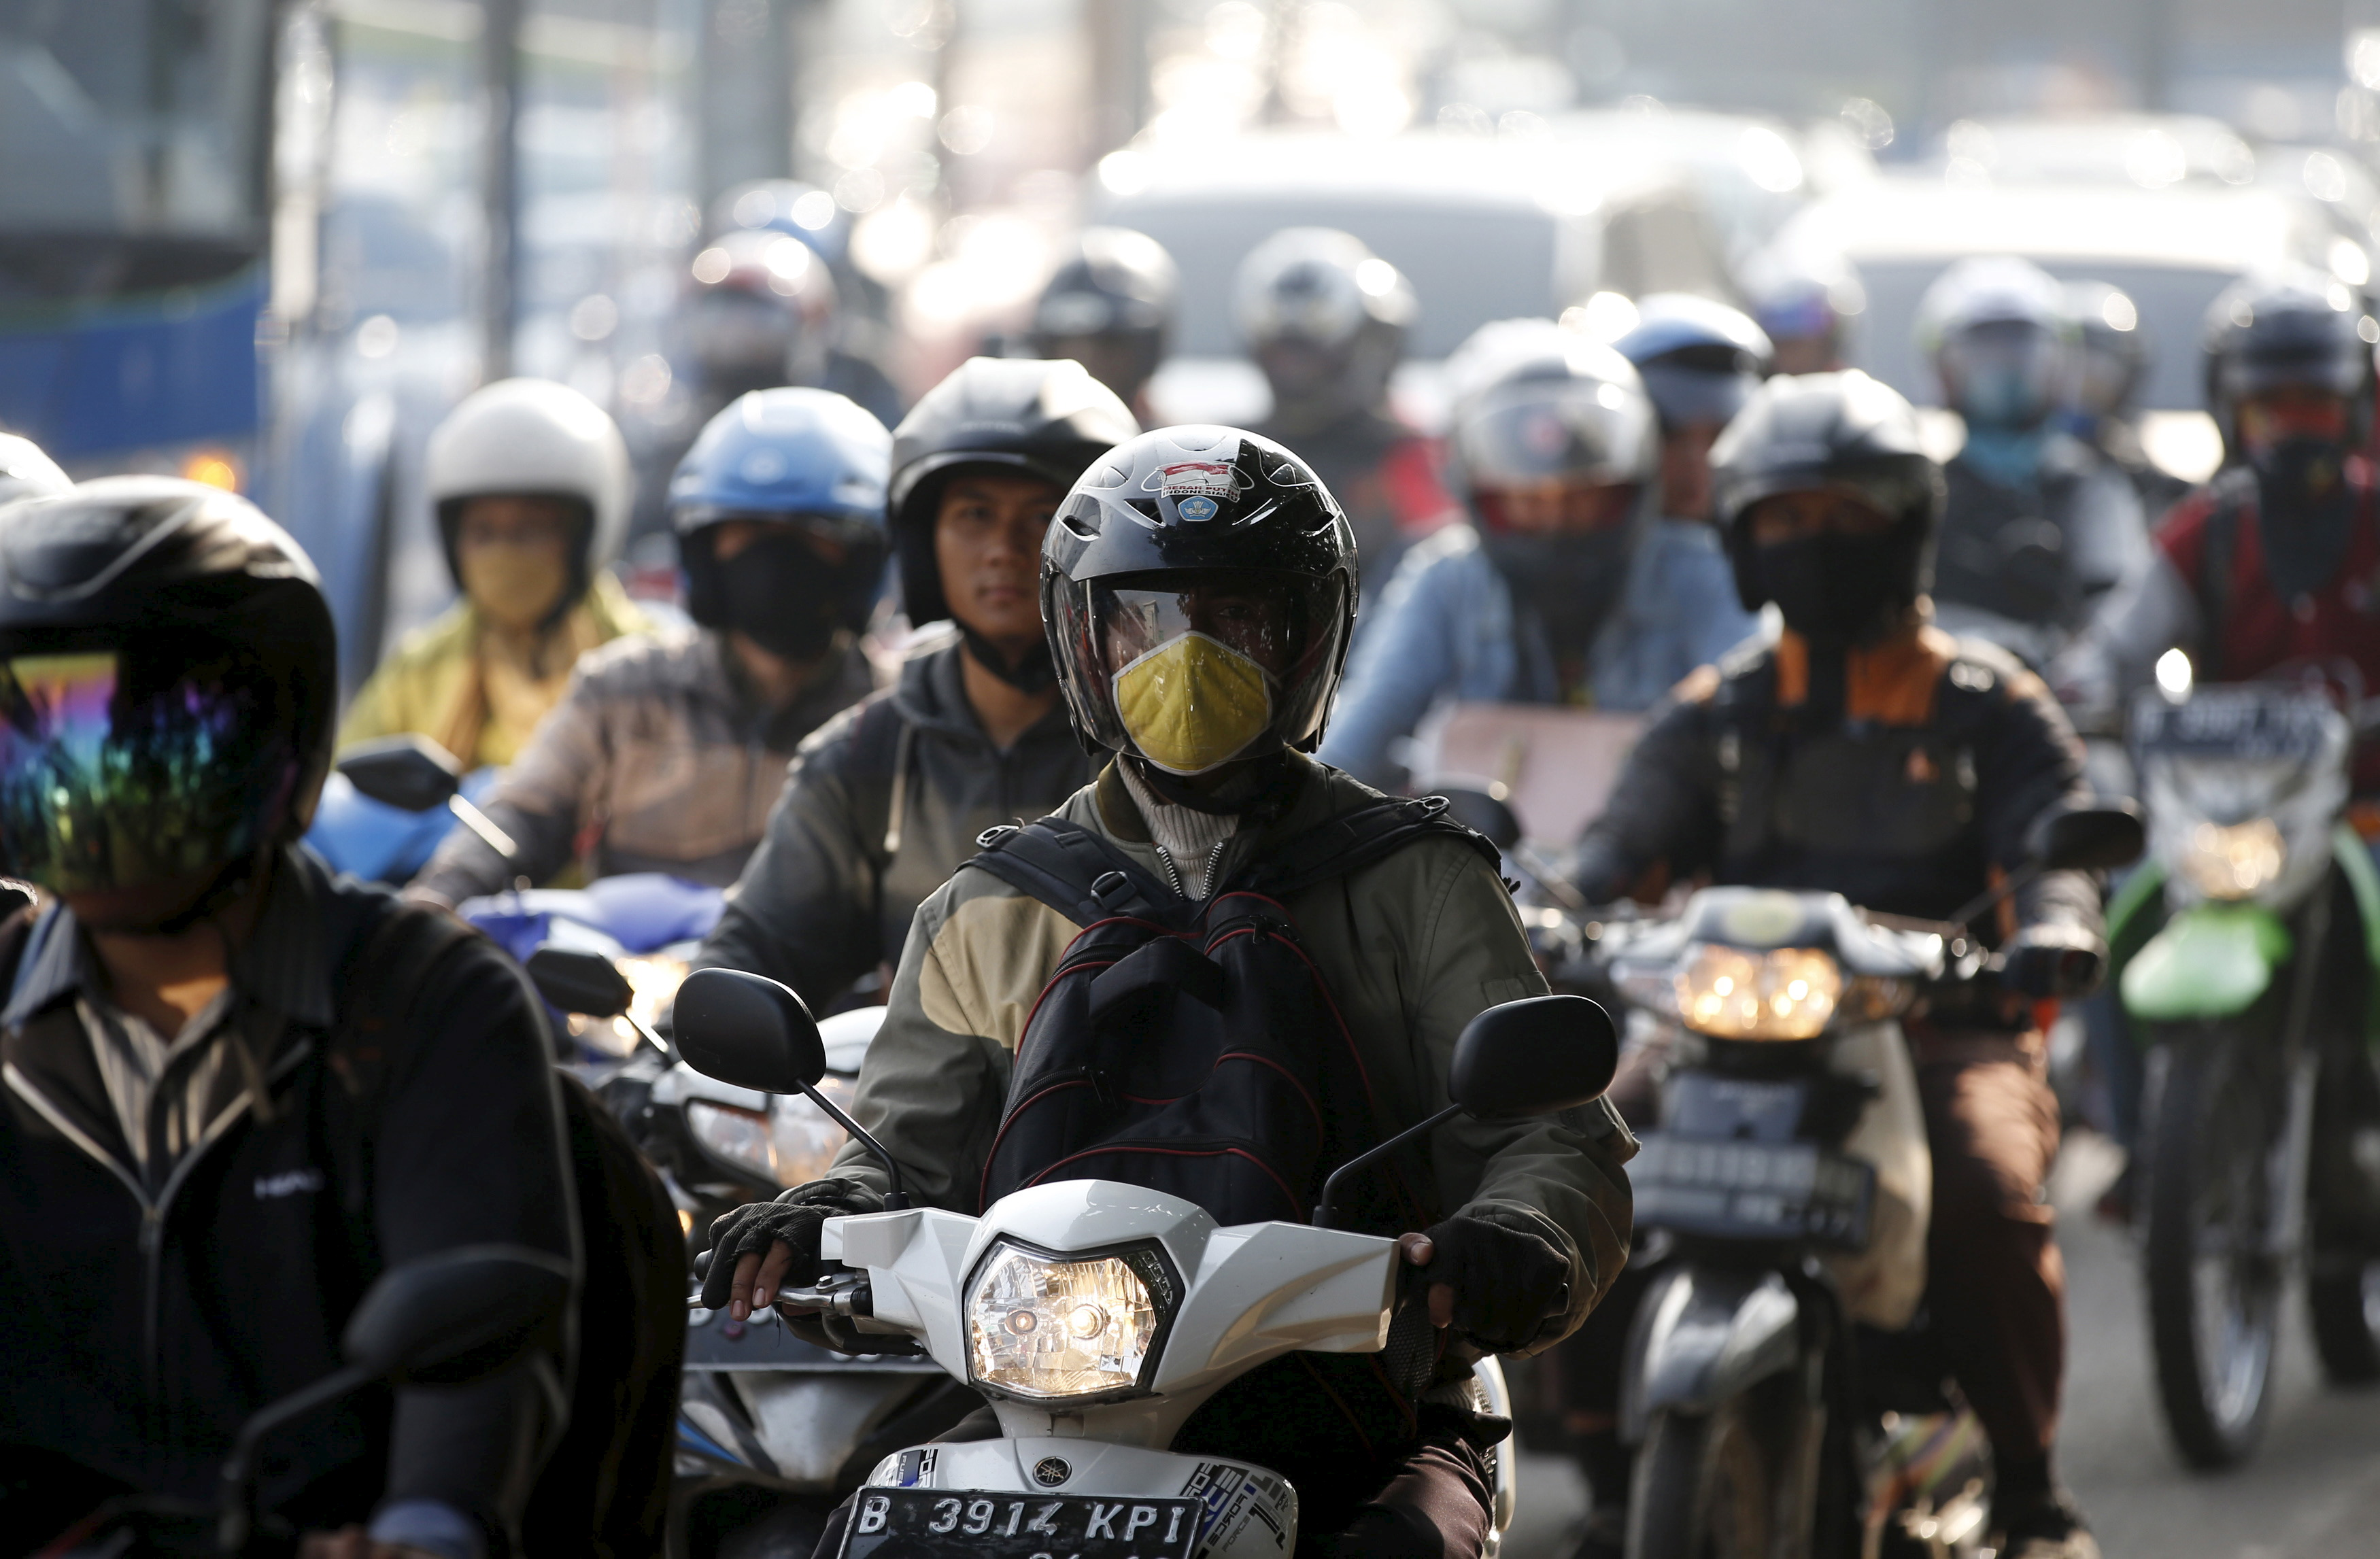 Motorcyclists ride on a major route next to a toll road into Jakarta on Feb. 25, 2015